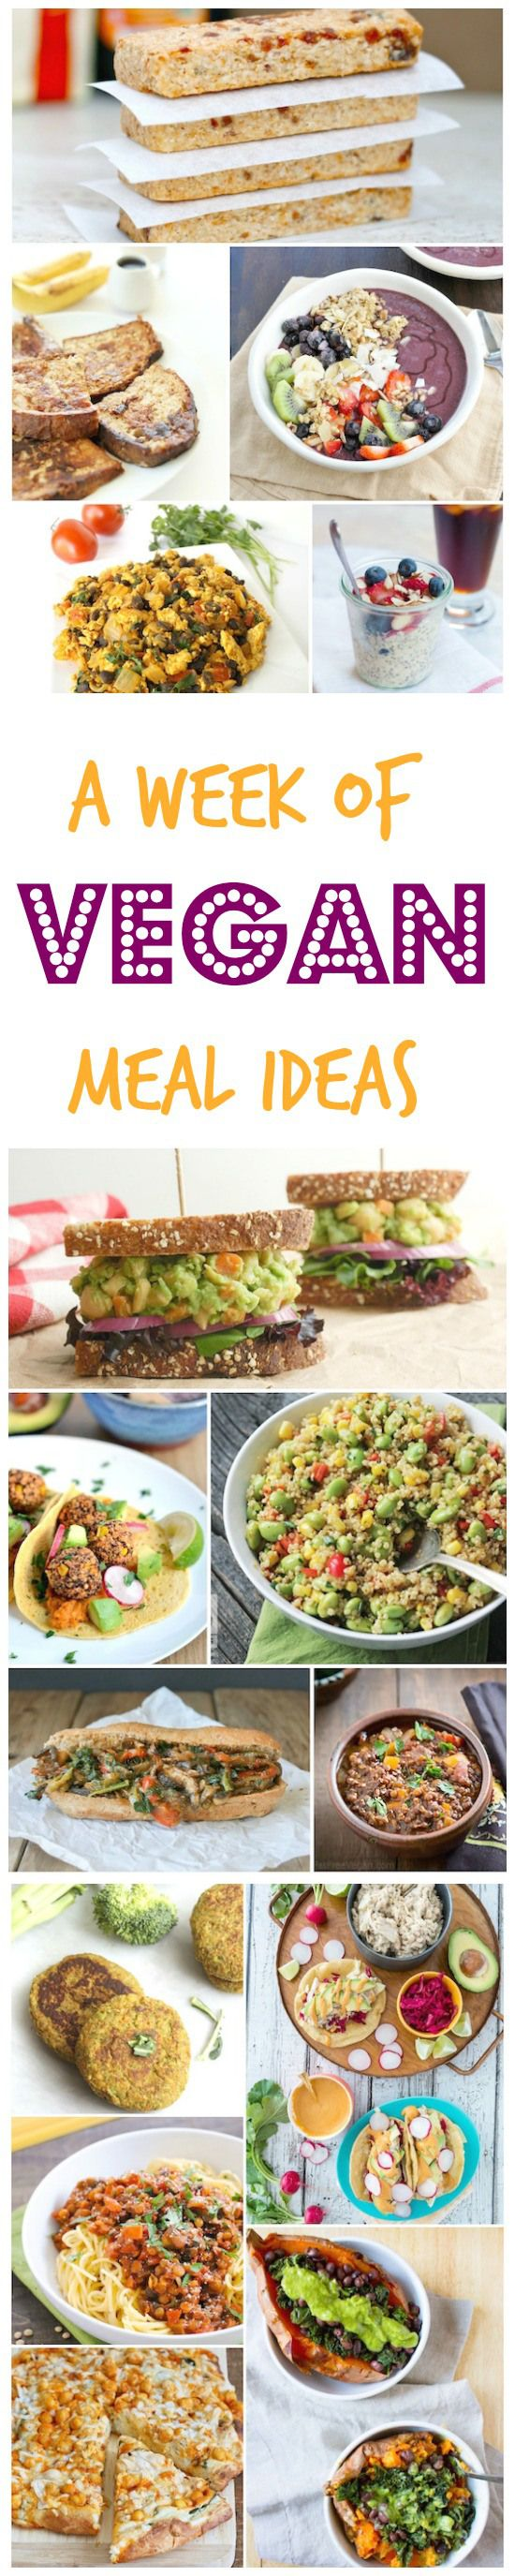 Menu planning? Check out this week of vegan meals for some delicious meatless breakfast, lunch and dinner ideas via @lin